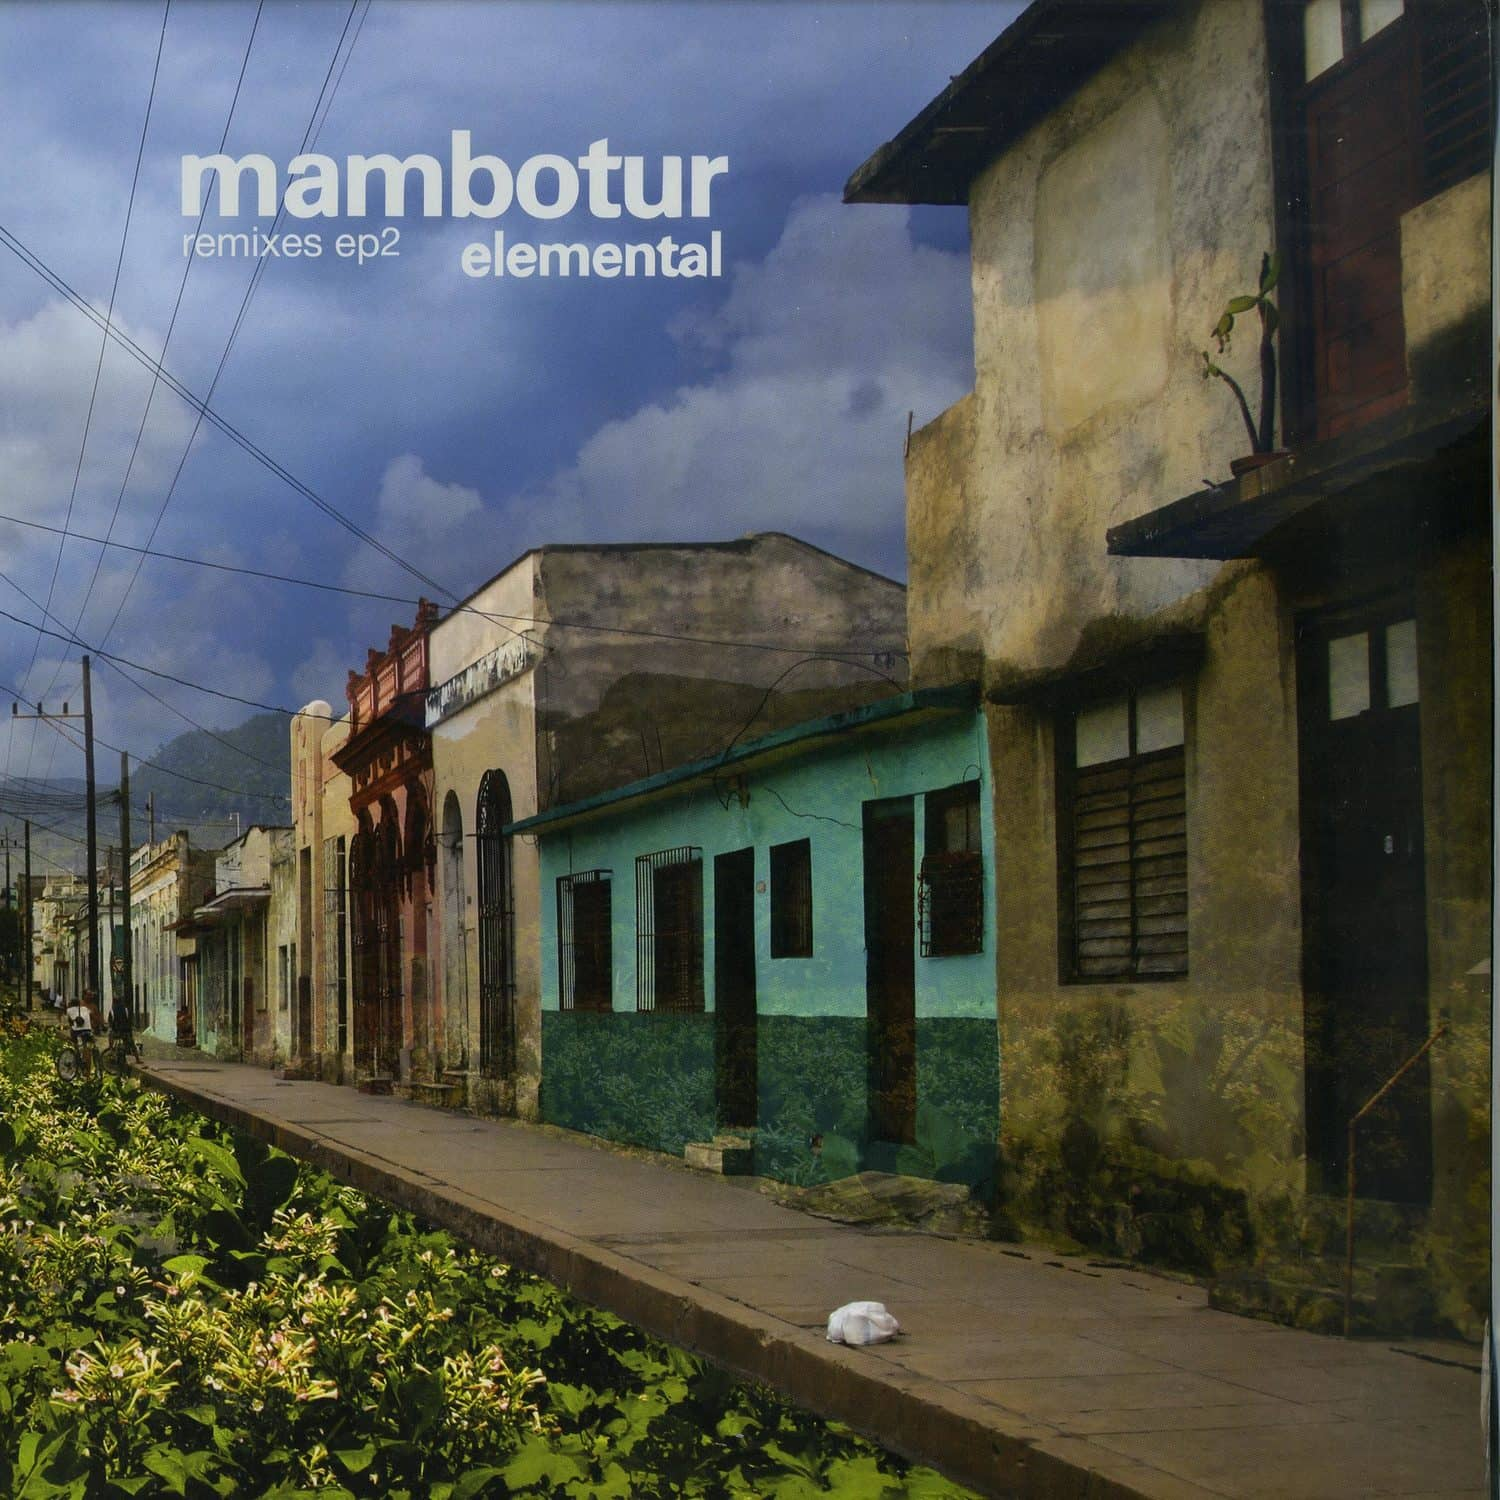 Mambotur - ELEMENTAL REMIXES PART 2 BY CAB DRIVERS, LUC RINGEISEN, DAP